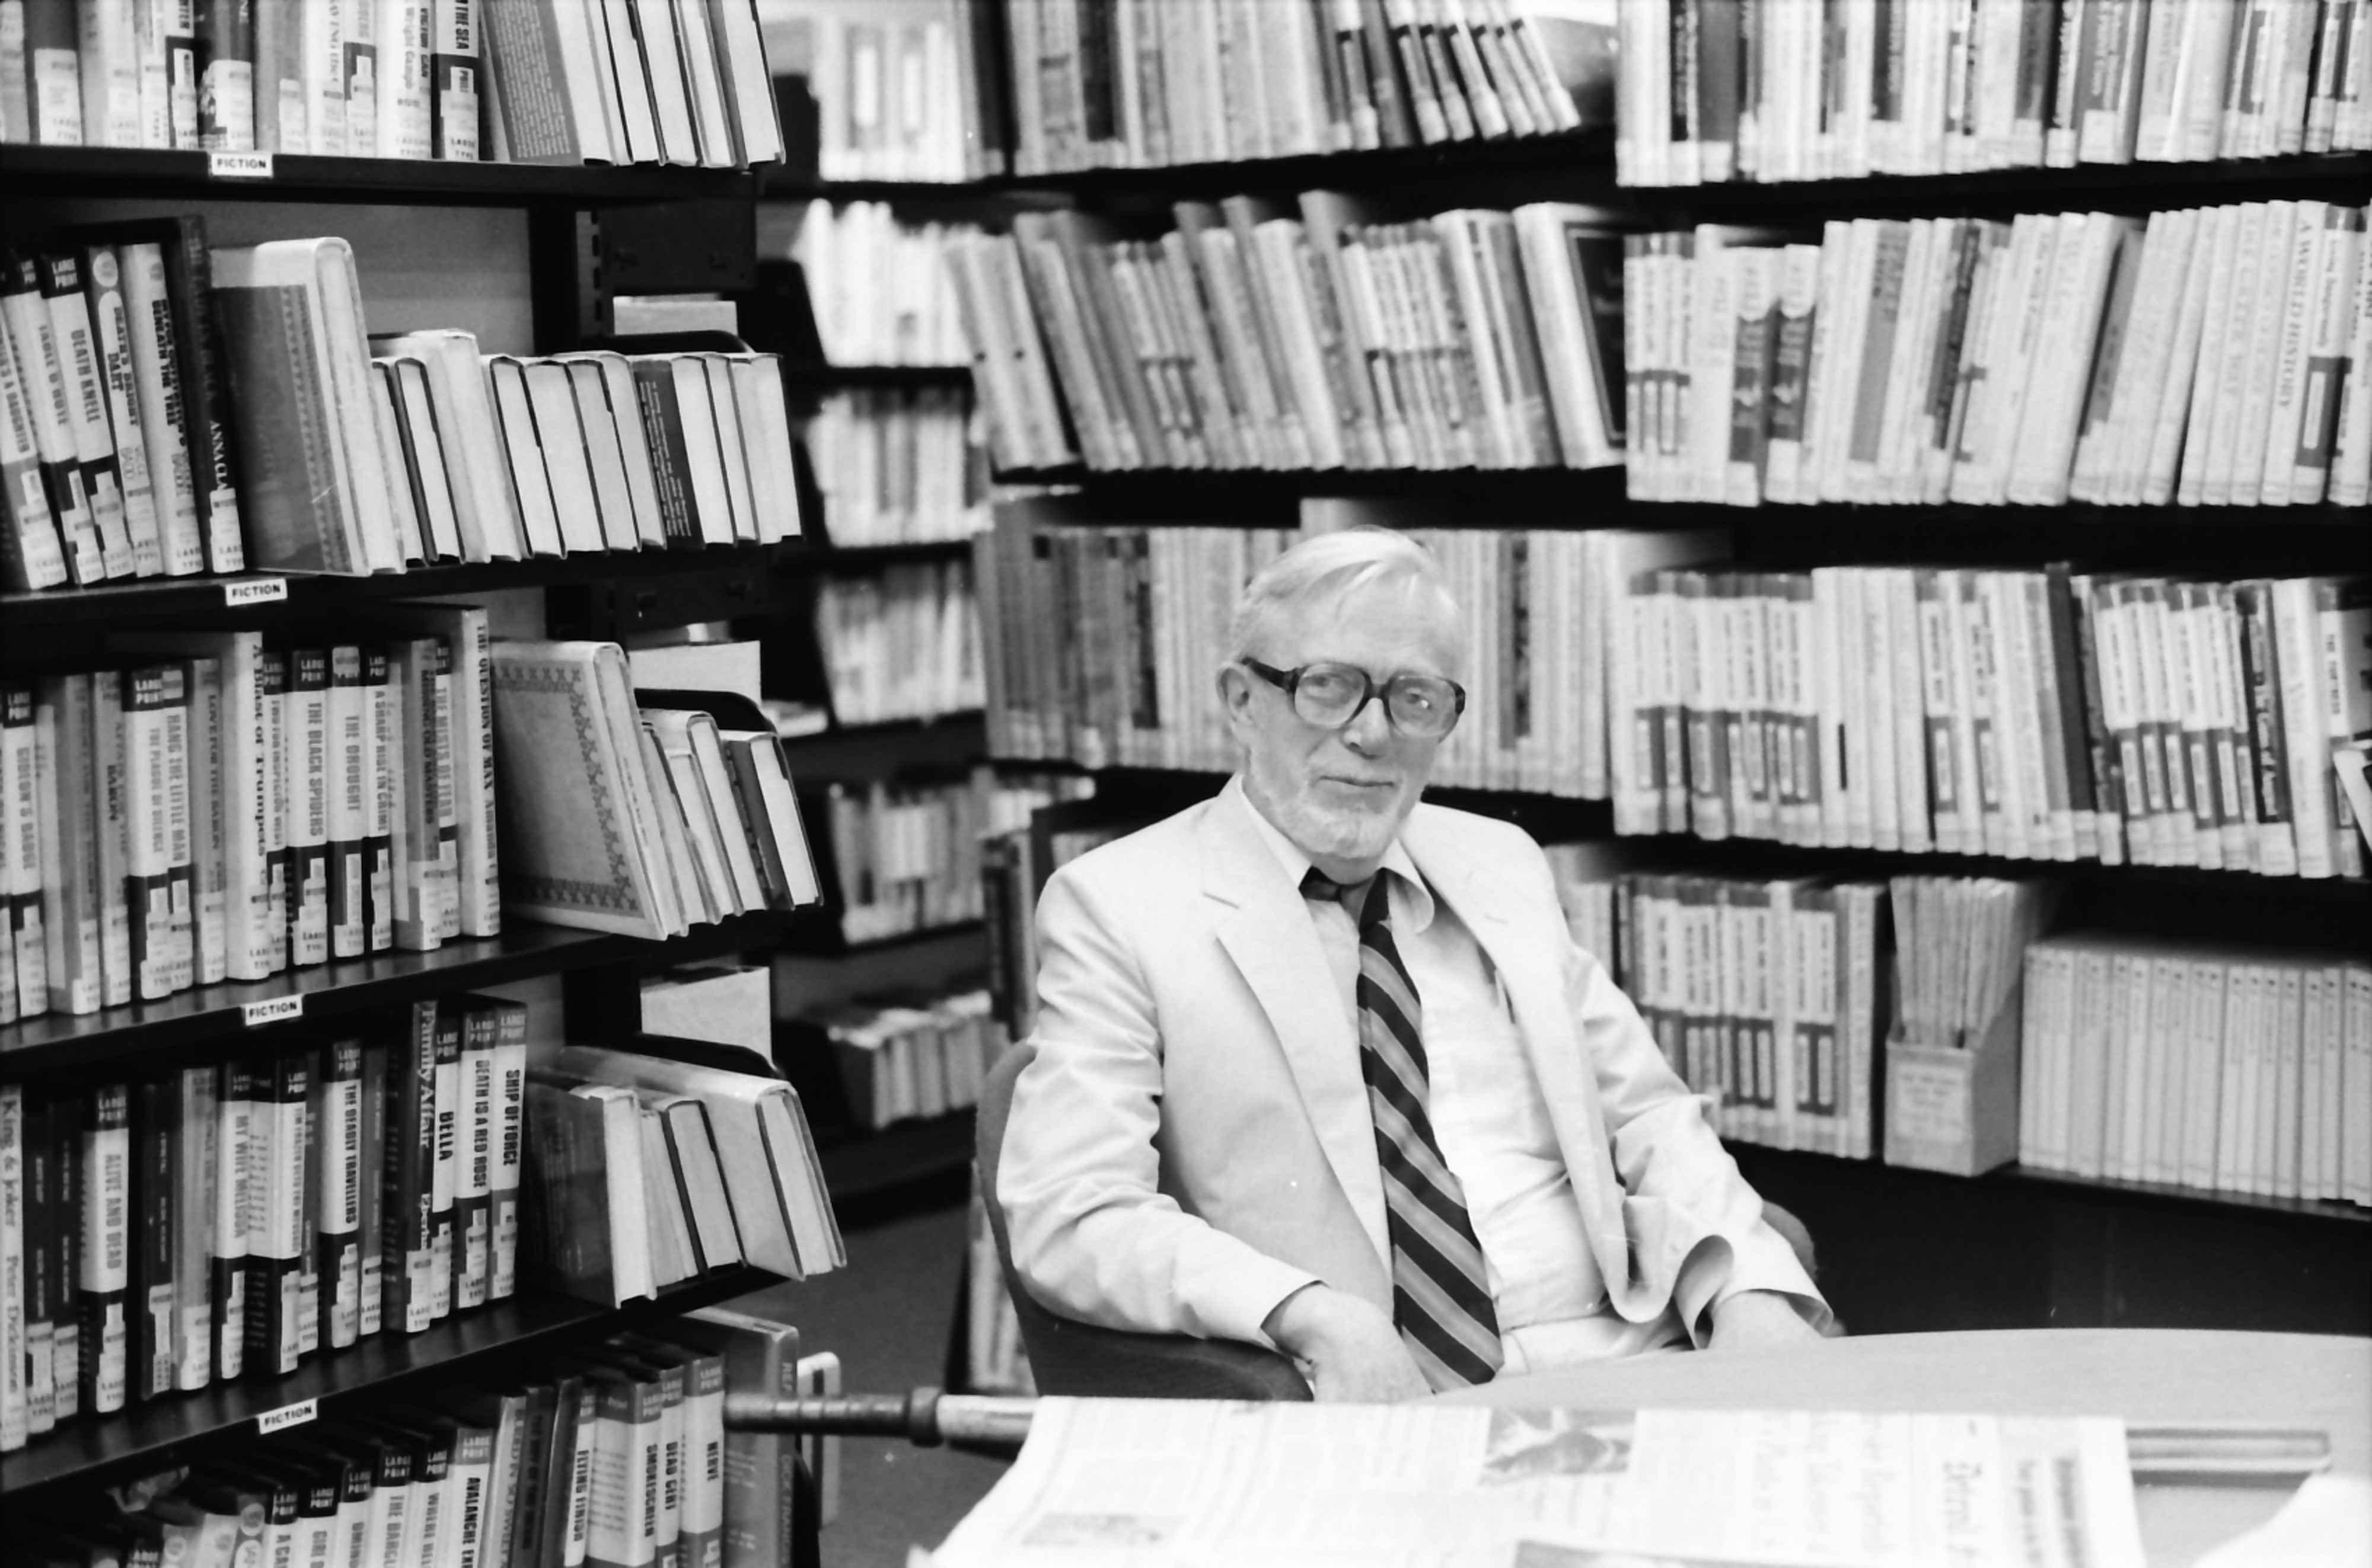 Ann Arbor Public Library Director Gene Wilson Talks About Retiring After 6 Years as Director and 32 Years With Library, June 1983 image